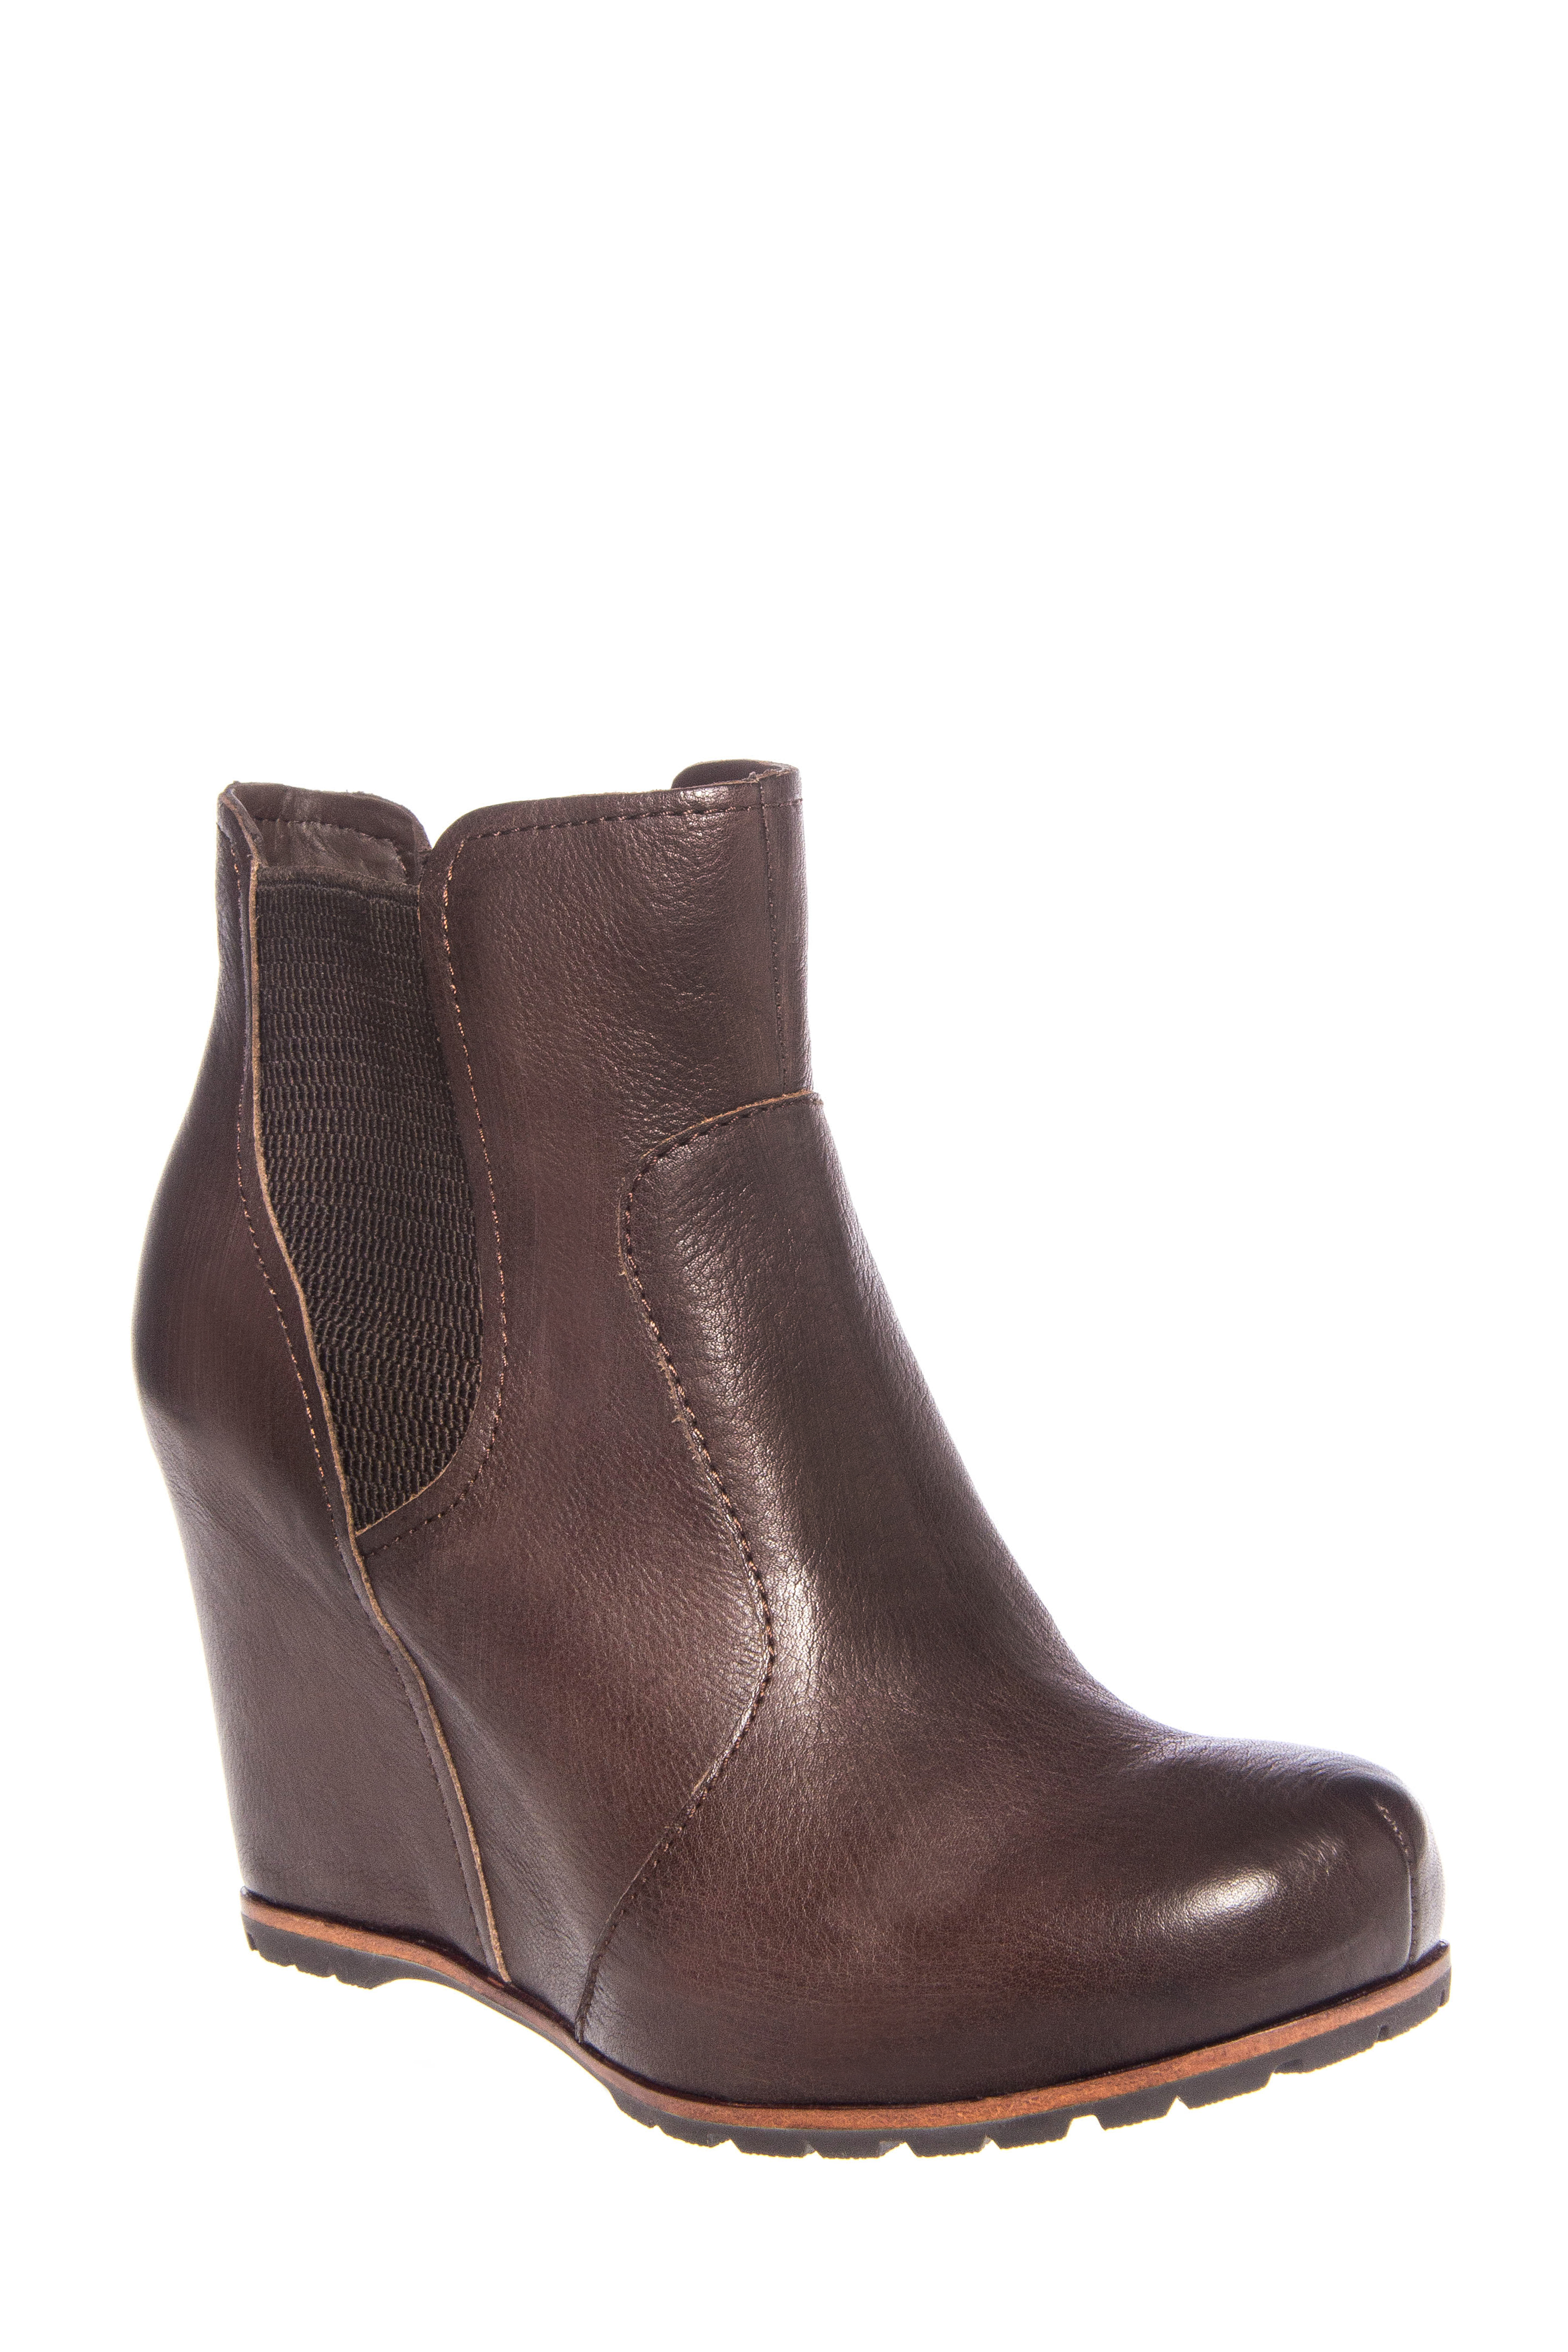 Kork-Ease Neville High Wedge Booties